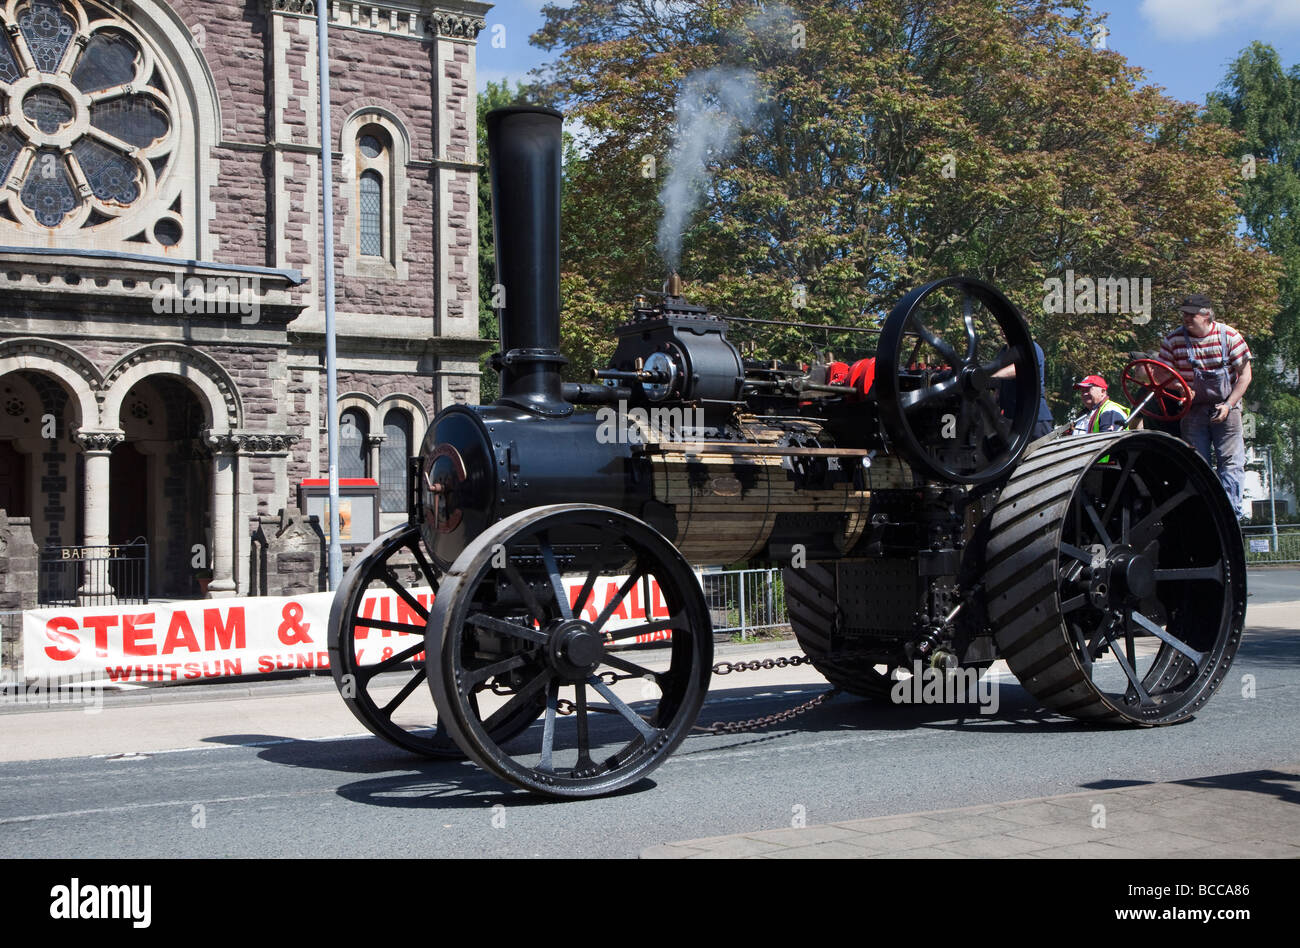 Traction engine in street parade Steam Fair Abergavenny Wales UK - Stock Image